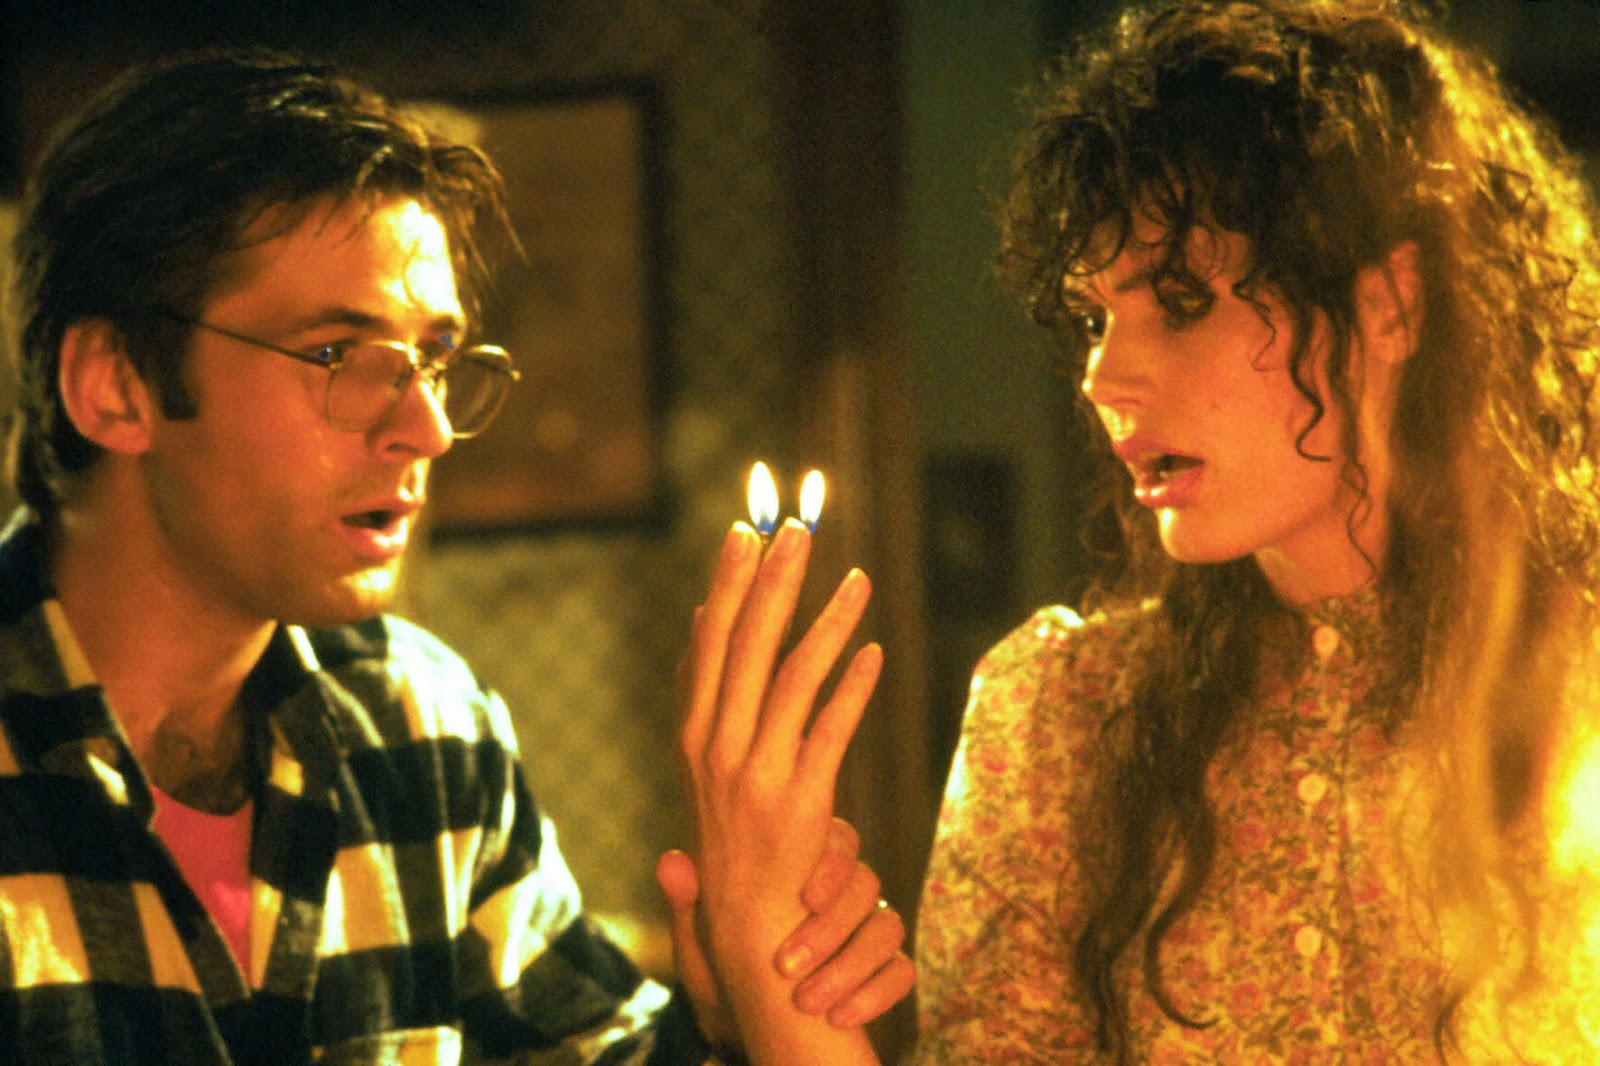 Husband and wife Adam and Barbara Maitland (Adam Baldwin and Geena Davis) who find themselves in the afterlife in Beetlejuice (1988)